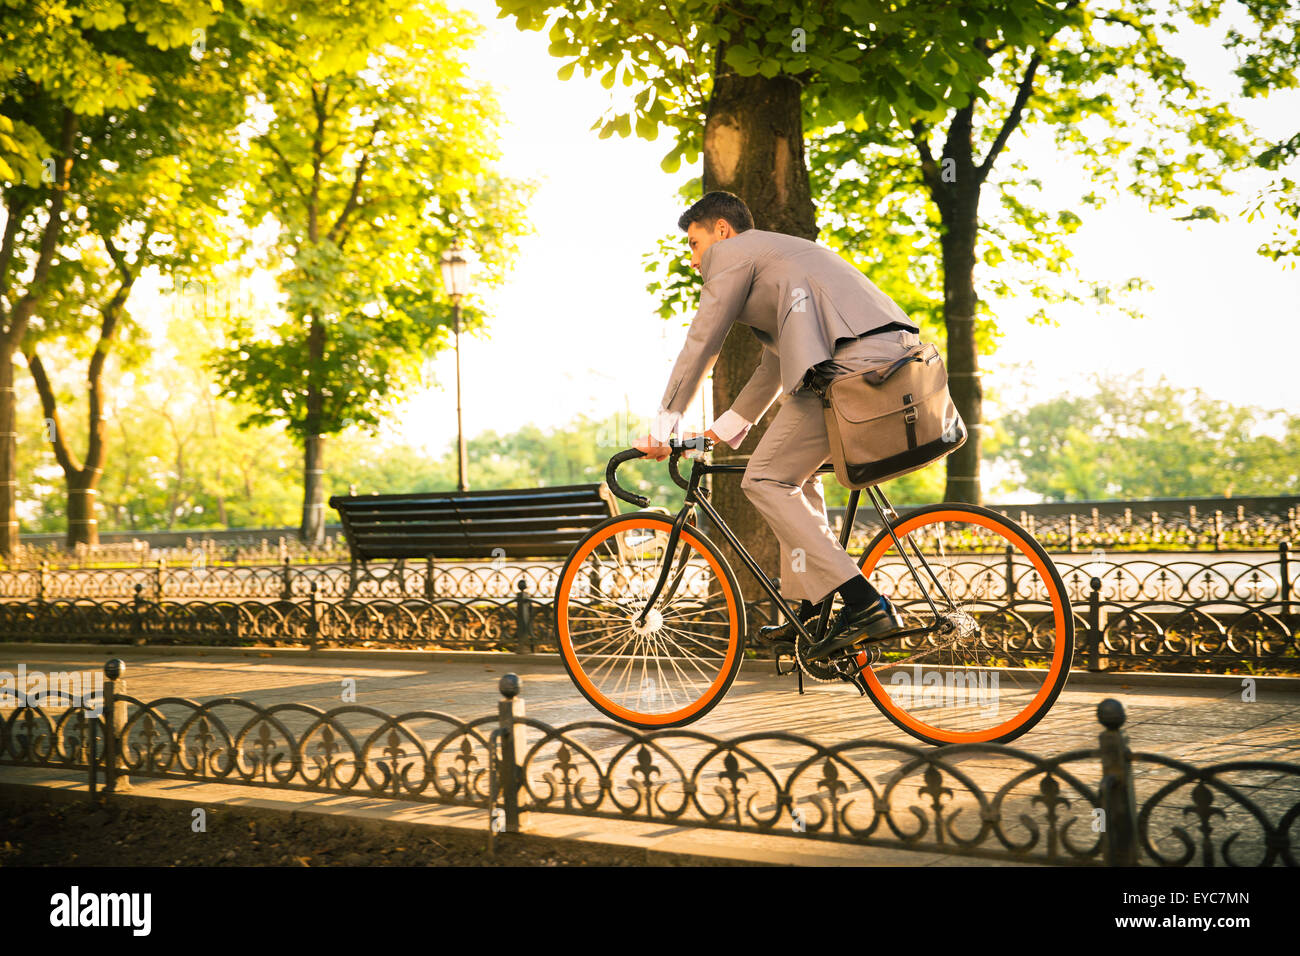 Businessman riding bicycle to work in park - Stock Image